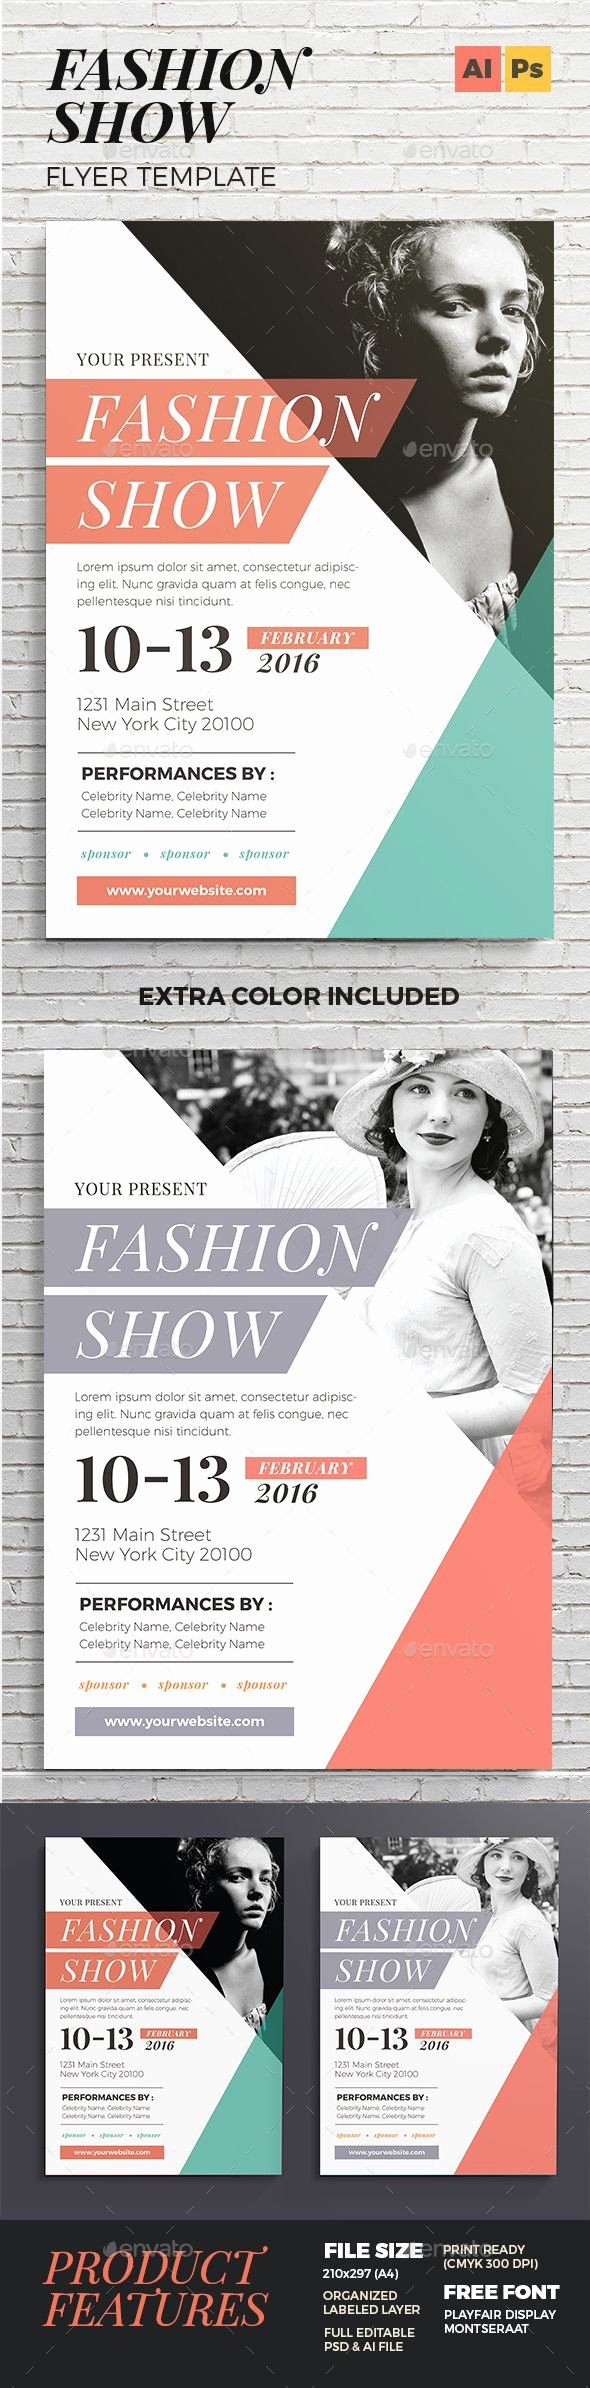 Fashion Show Invitation Template Awesome Pin by Best Graphic Design On Flyer Templates